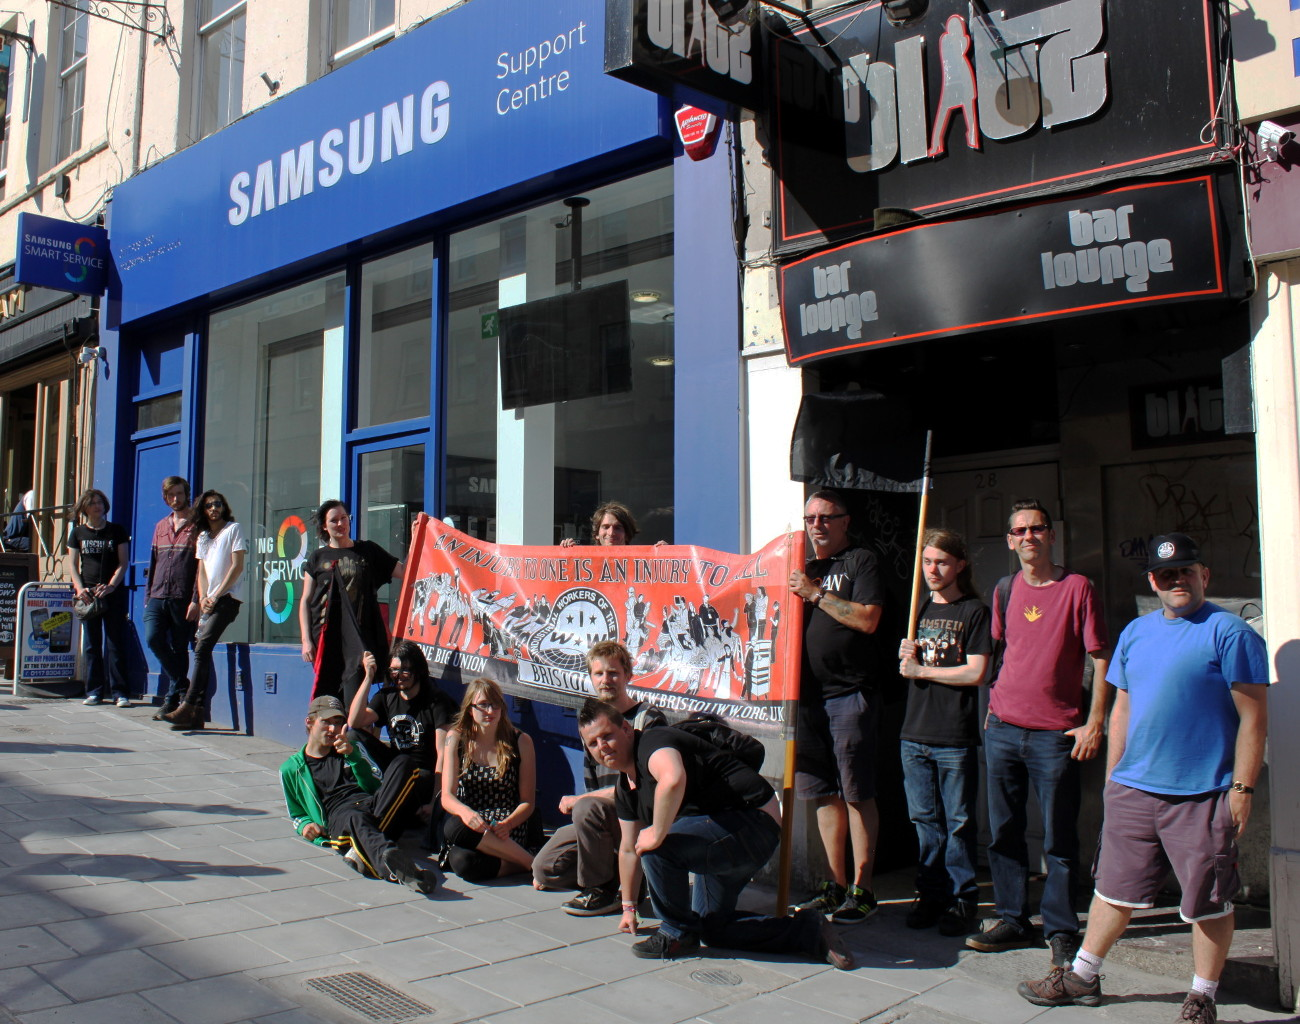 Out side Samsung shop